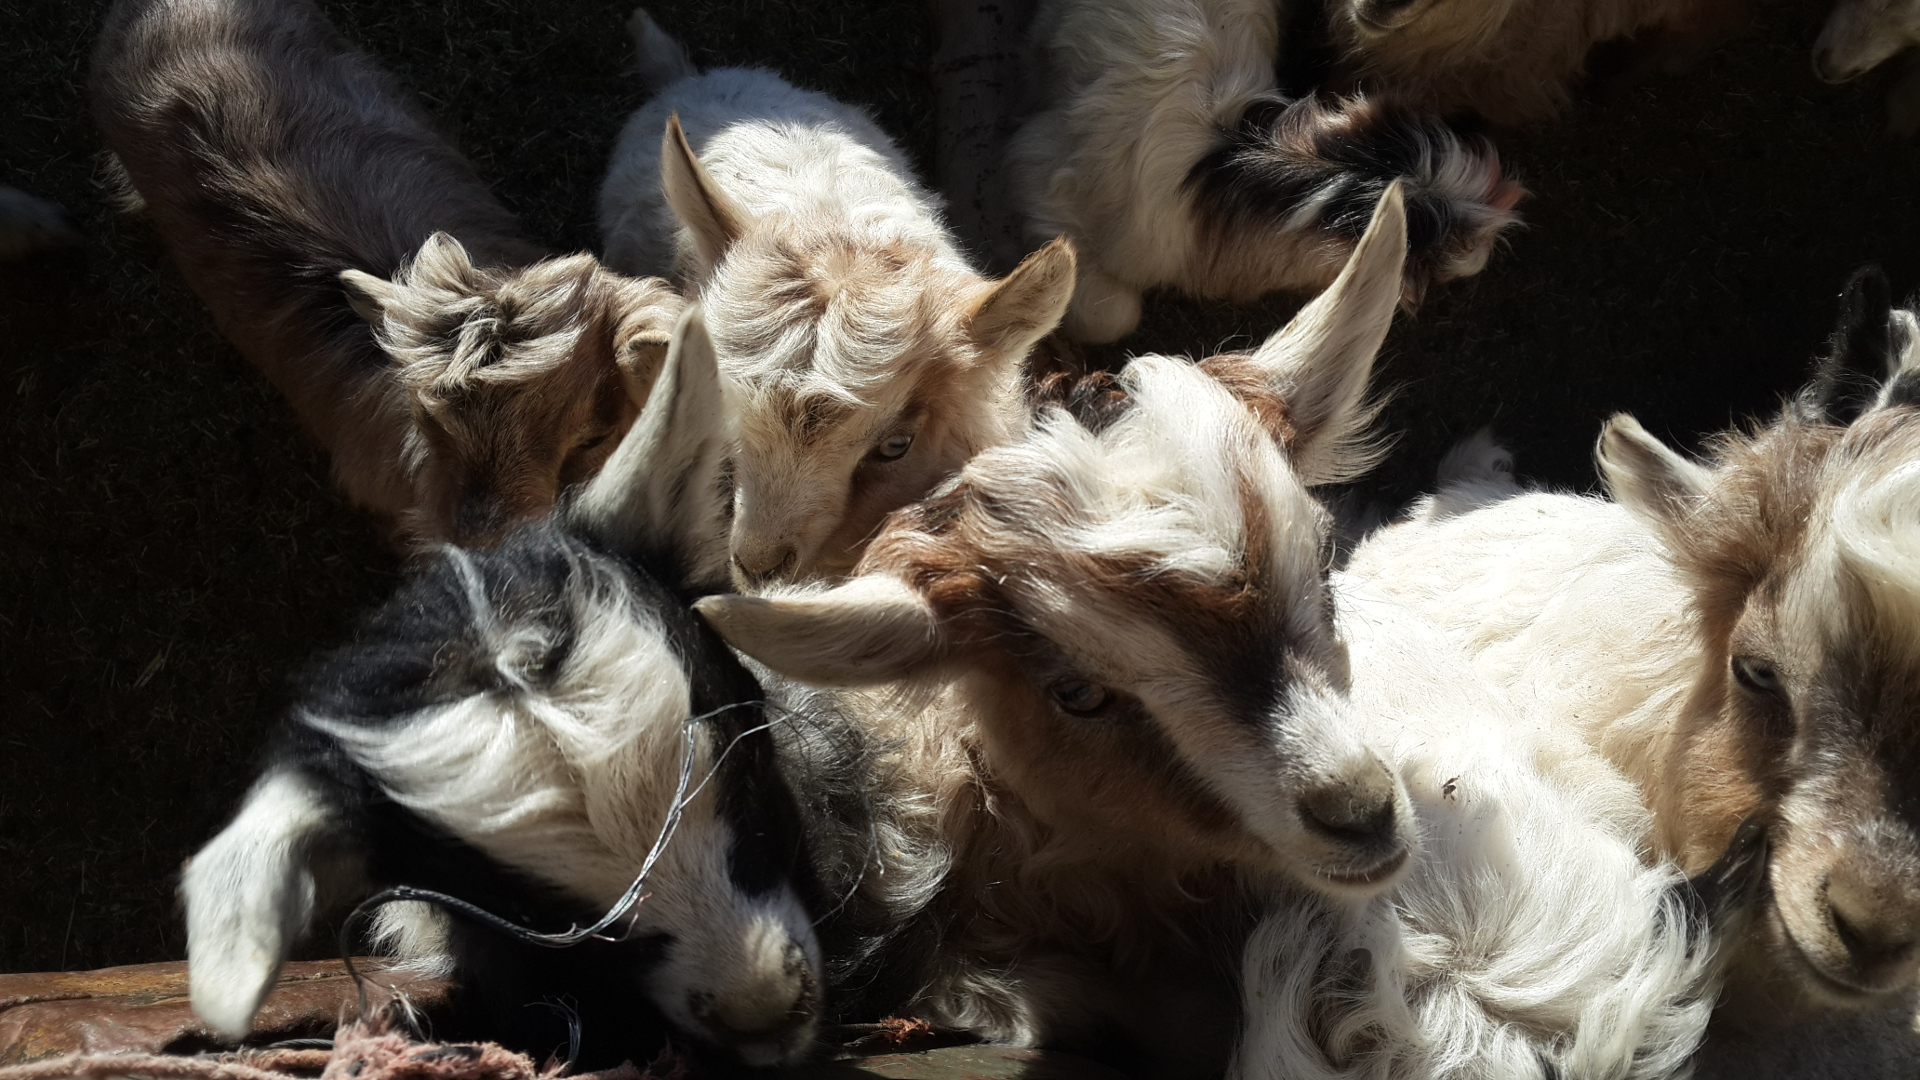 Staying overnight at Spangmik next to Pangong Lake gives you a chance to track down baby goats in the early morning sun.